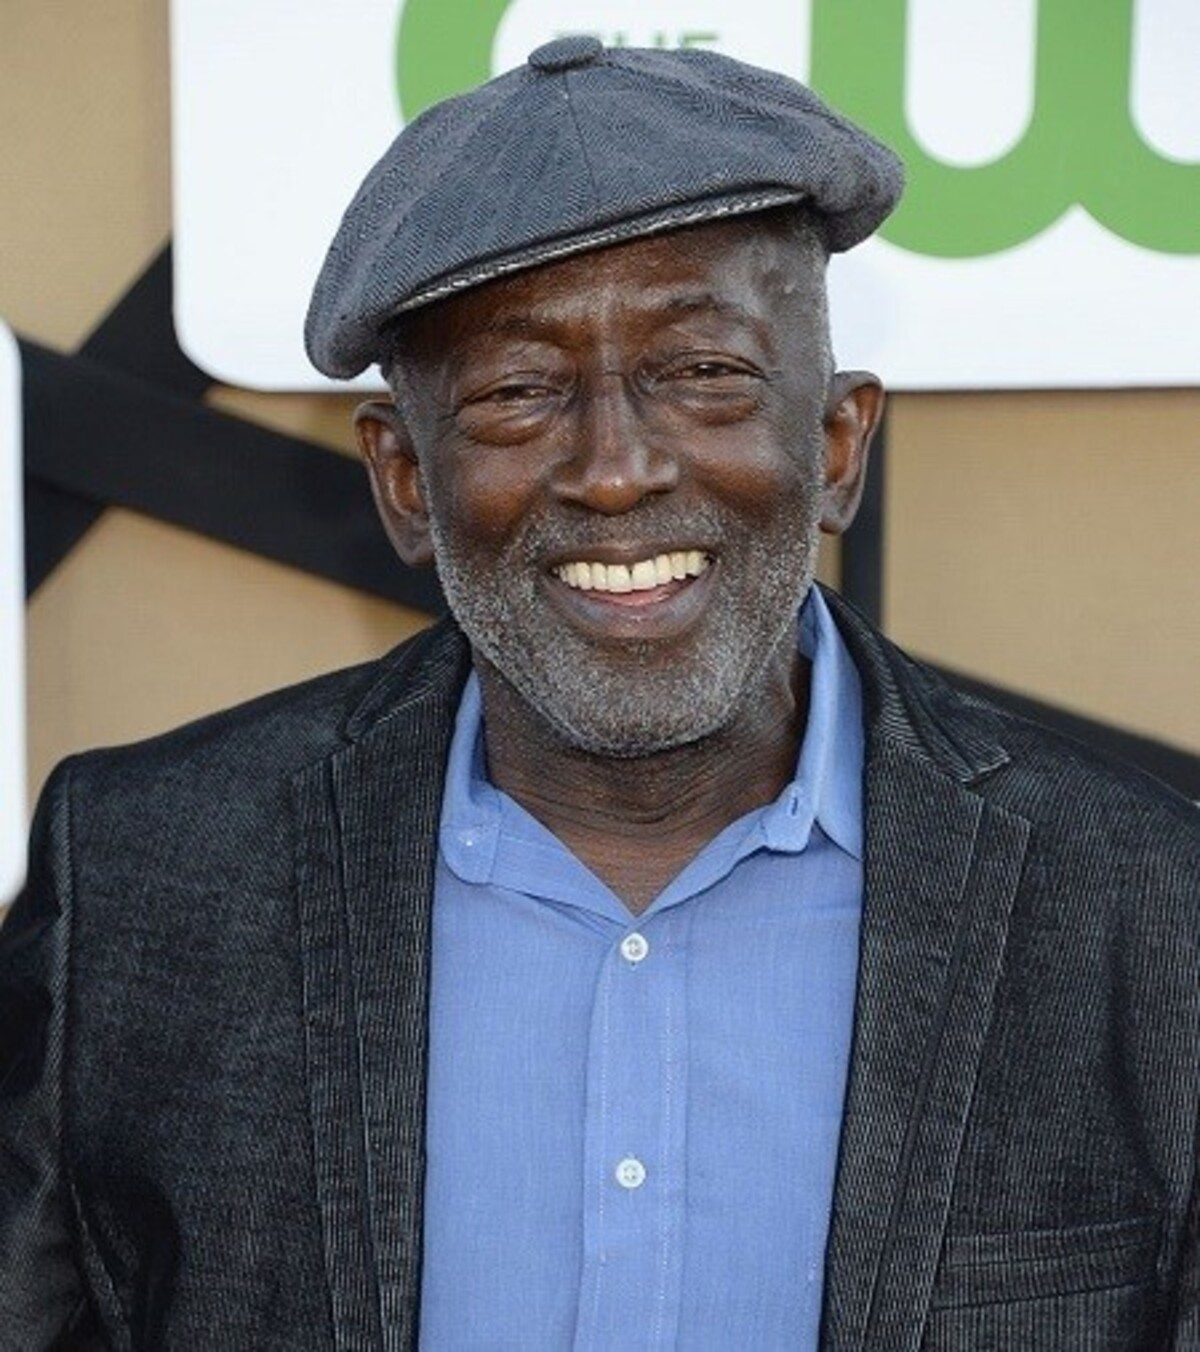 garrett morris ant mangarrett morris guitar, garrett morris windhand, garrett morris, garrett morris snl, garrett morris wife, garrett morris this is us, гаррет моррис, garrett morris young, garrett morris instagram, гарретт моррис, garrett morris age, garrett morris ant man, garrett morris death, garrett morris baseball, garrett morris ant man snl, garrett morris family guy, garrett morris saturday night live, garrett morris imdb, garrett morris baseball youtube, garrett morris oxford